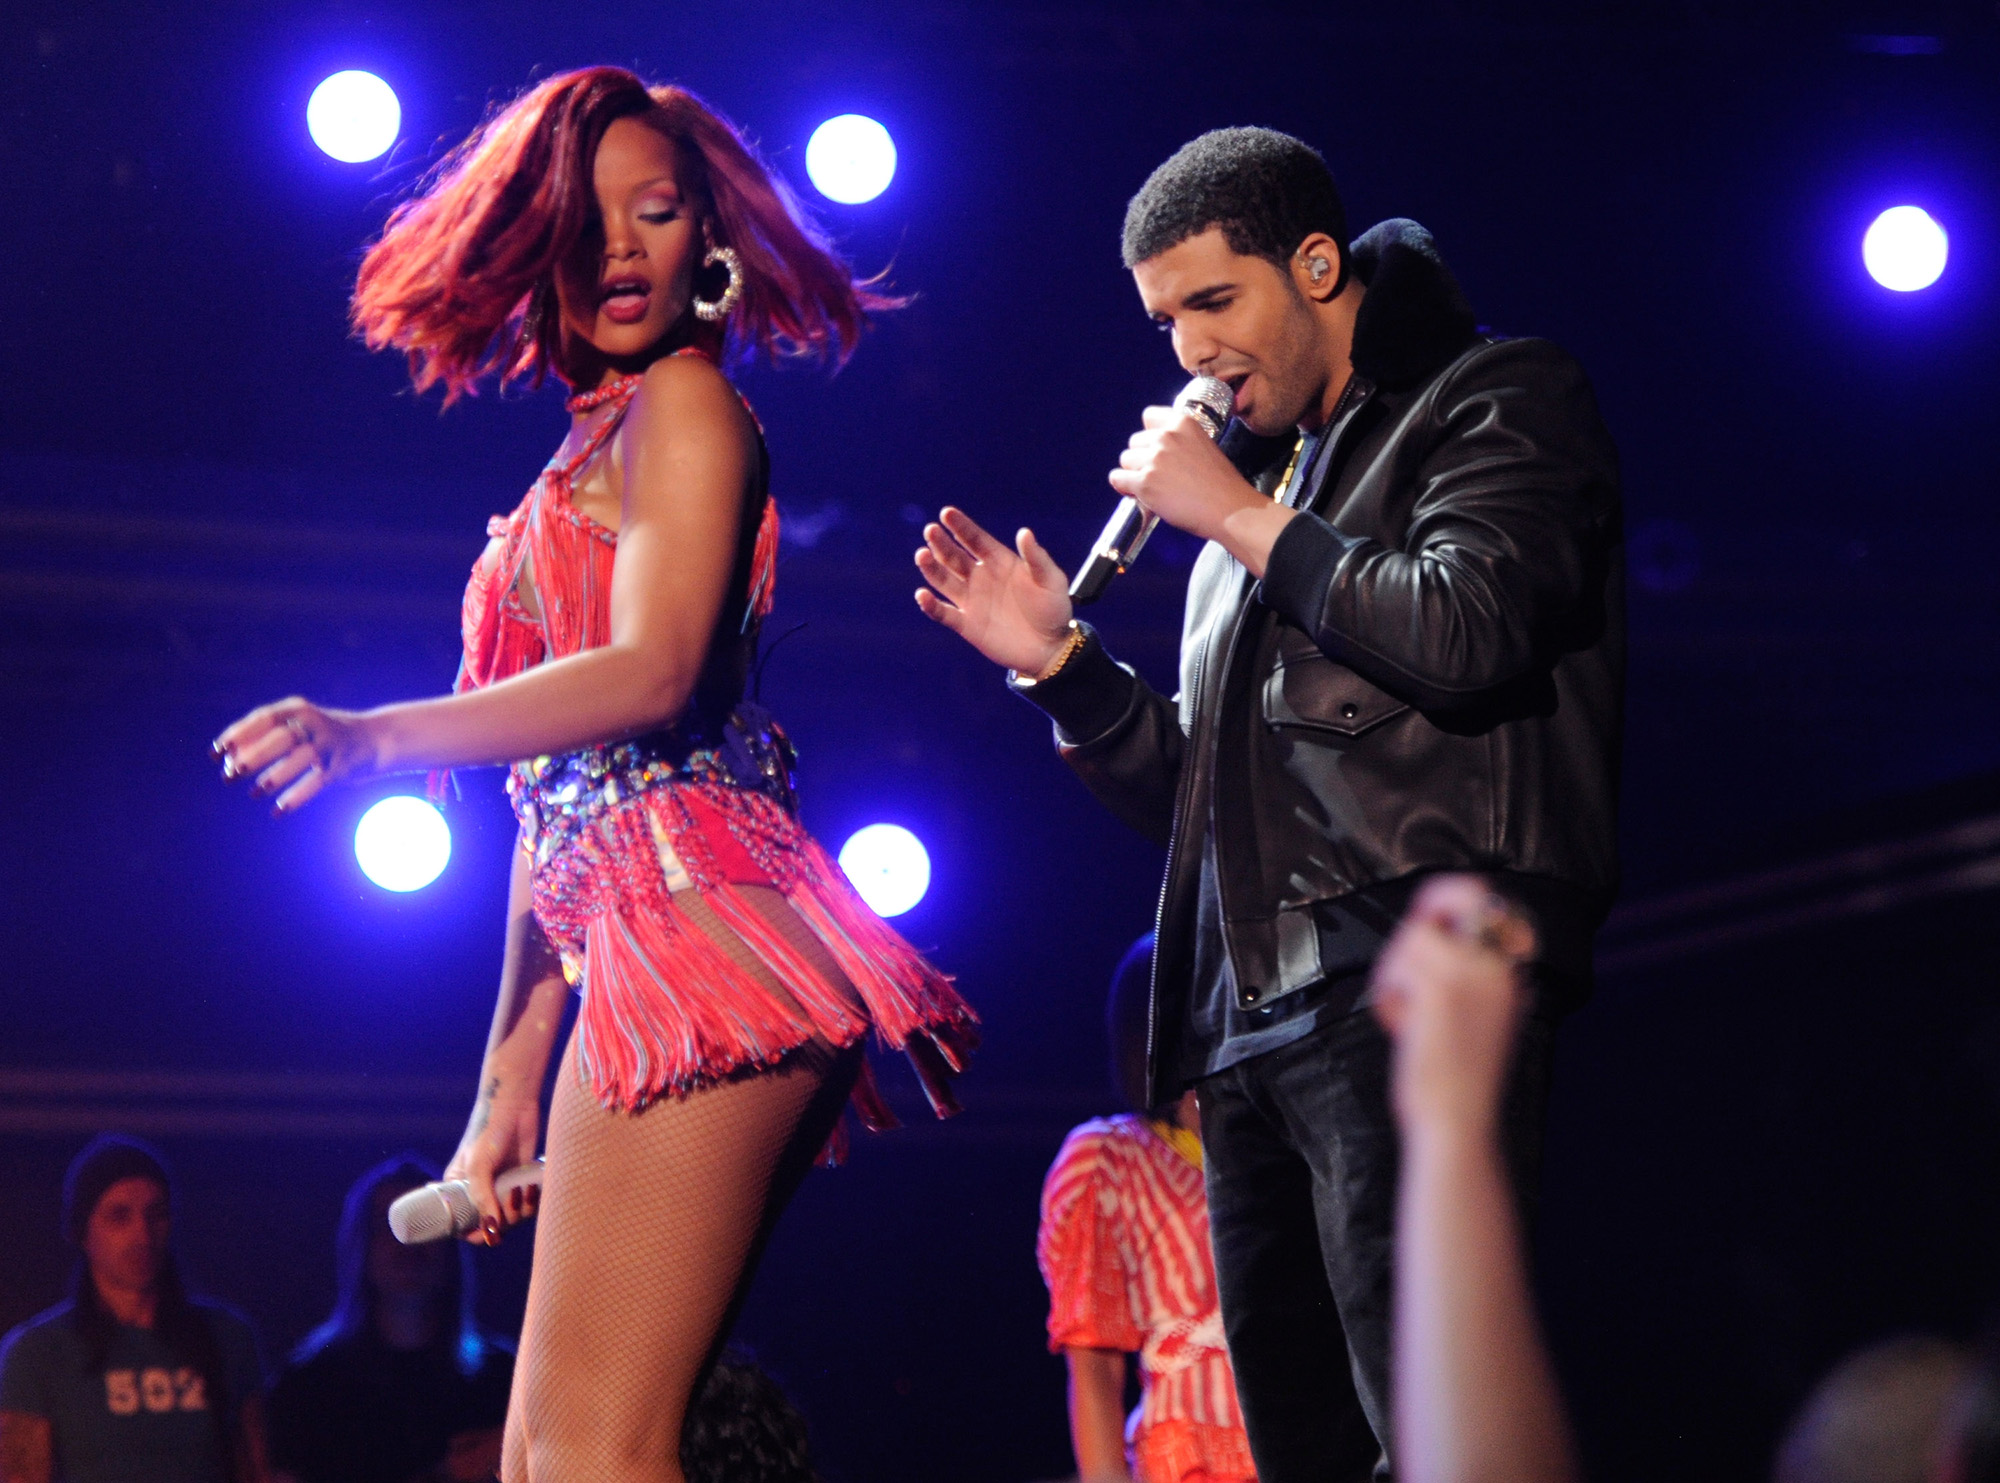 Drake and Rihanna perform onstage during The 53rd Annual GRAMMY Awards held at [f500link]Staples[/f500link] Center on February 13, 2011 in Los Angeles, California. (Photo by Kevin Mazur/WireImage)